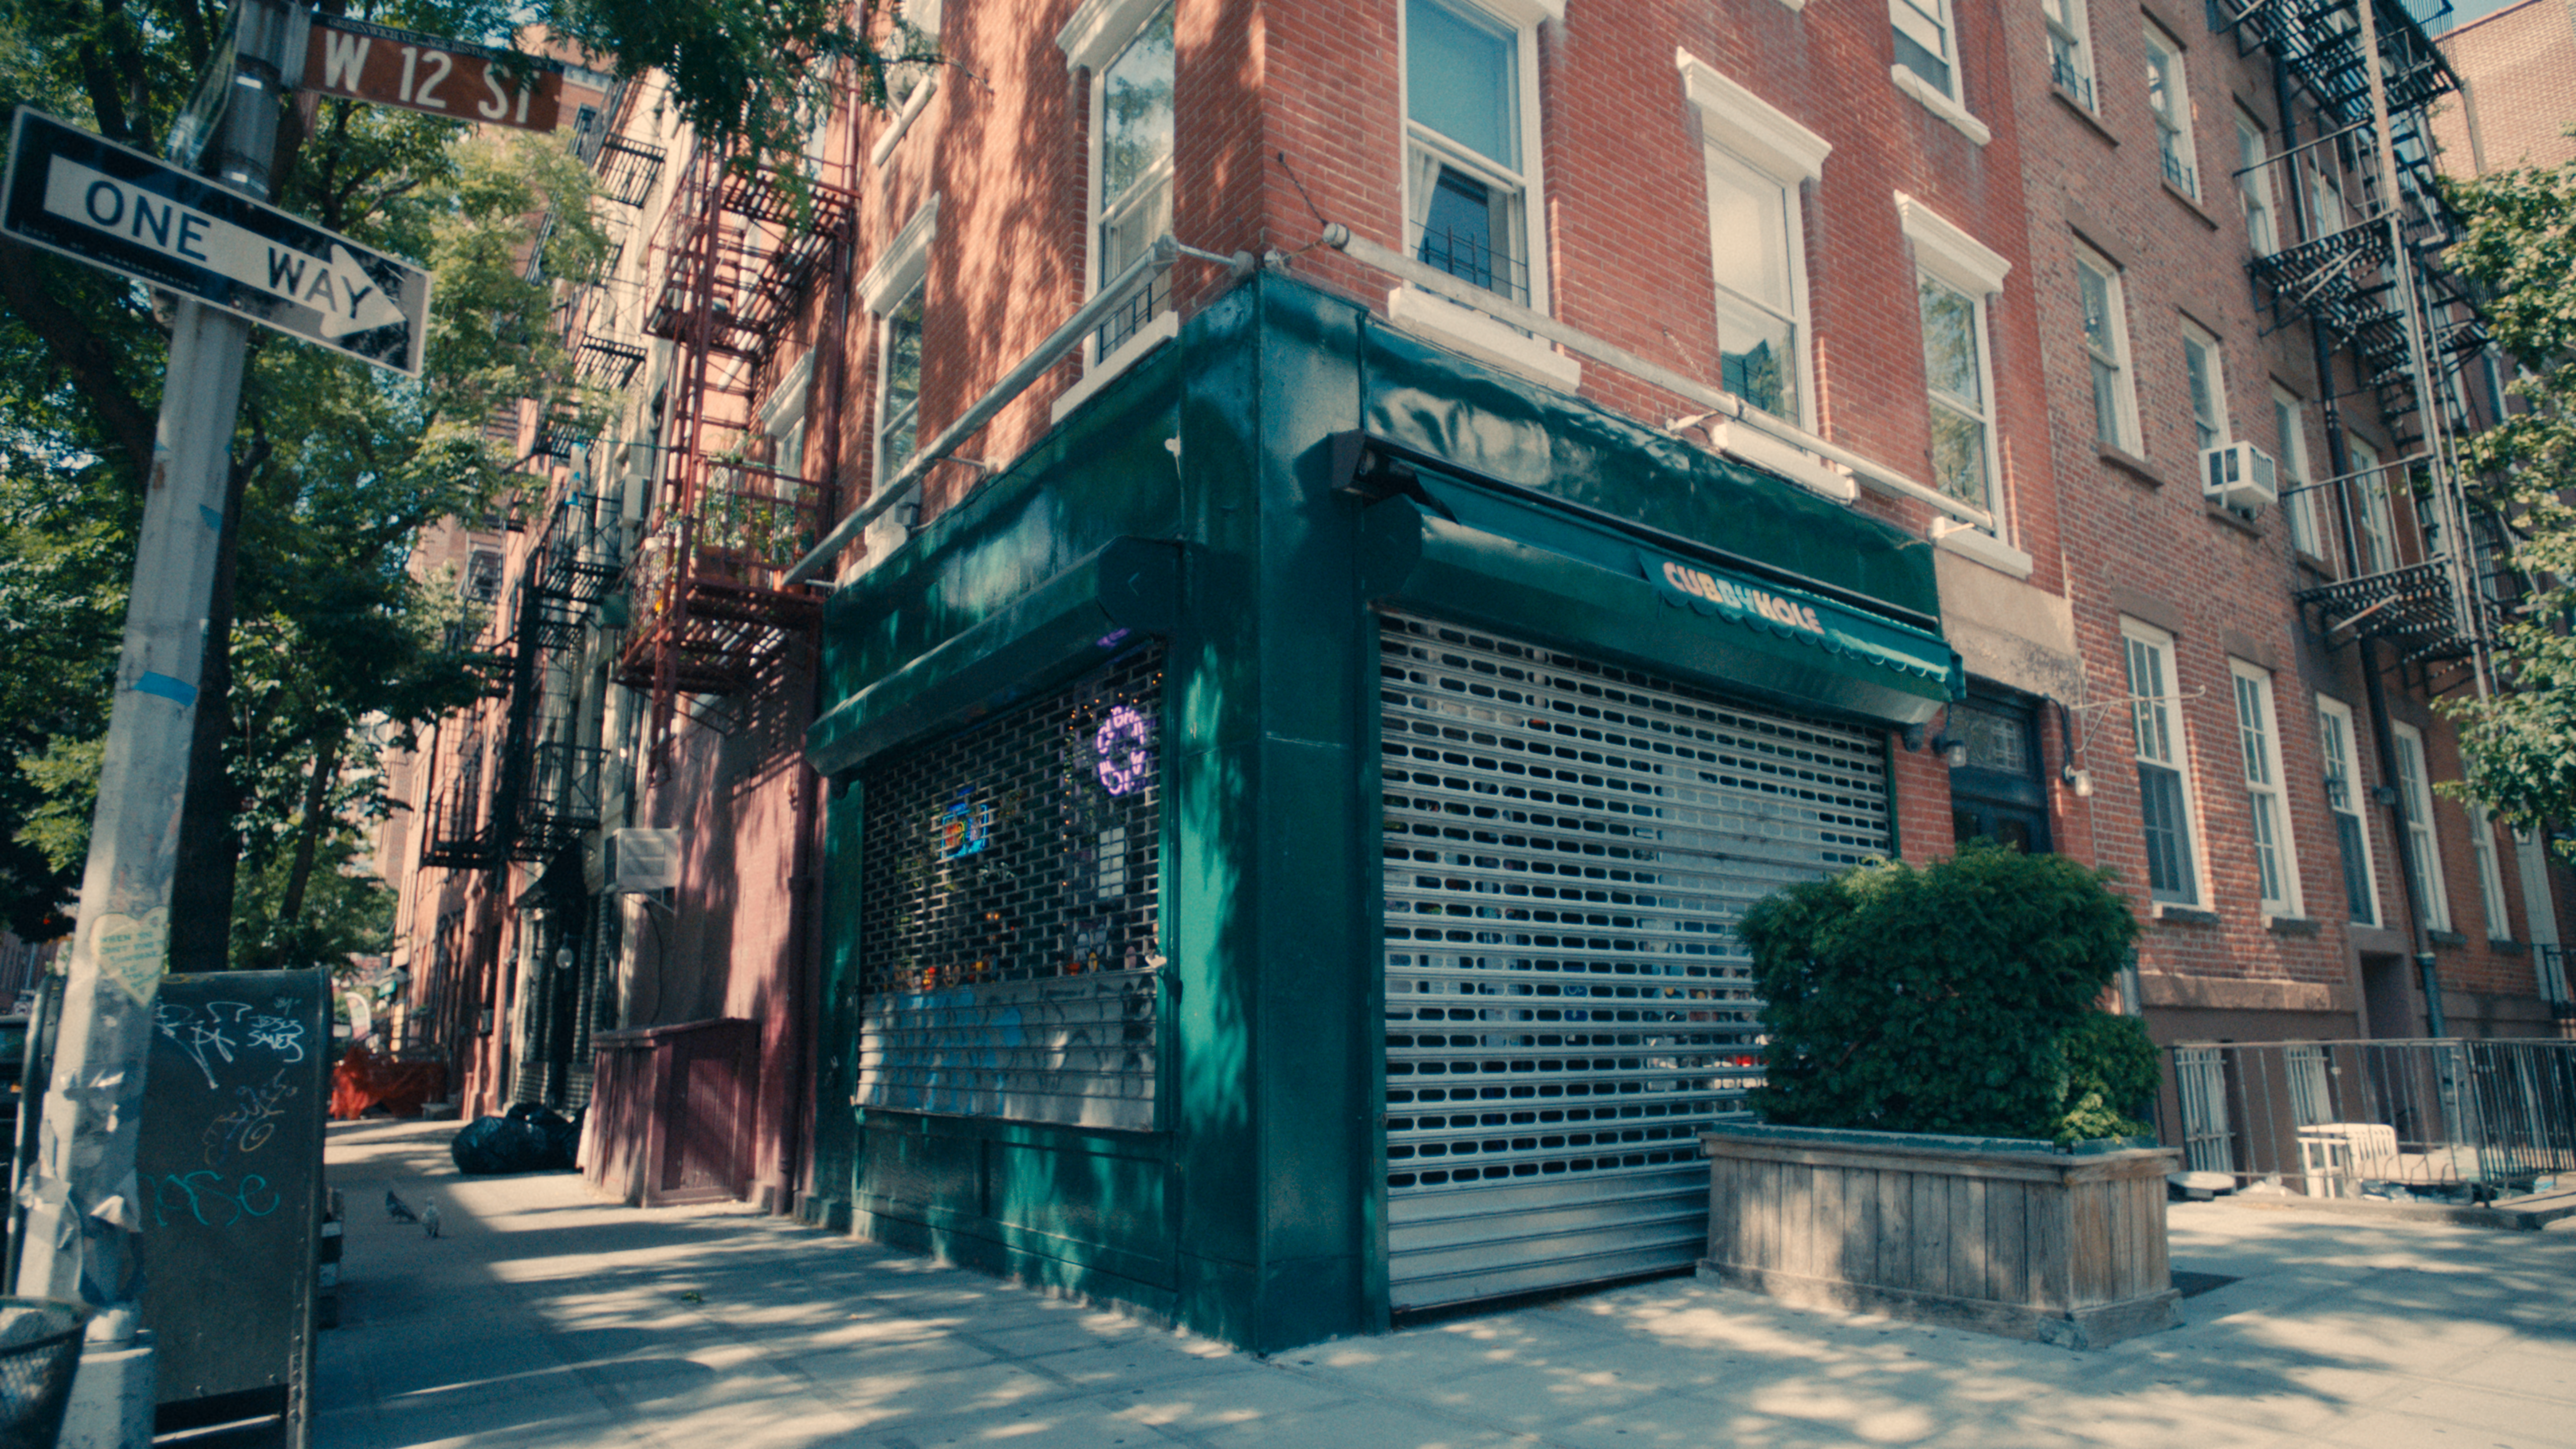 A bar with green trim, neon signs, and its security gate down on a block in New York's West Village.